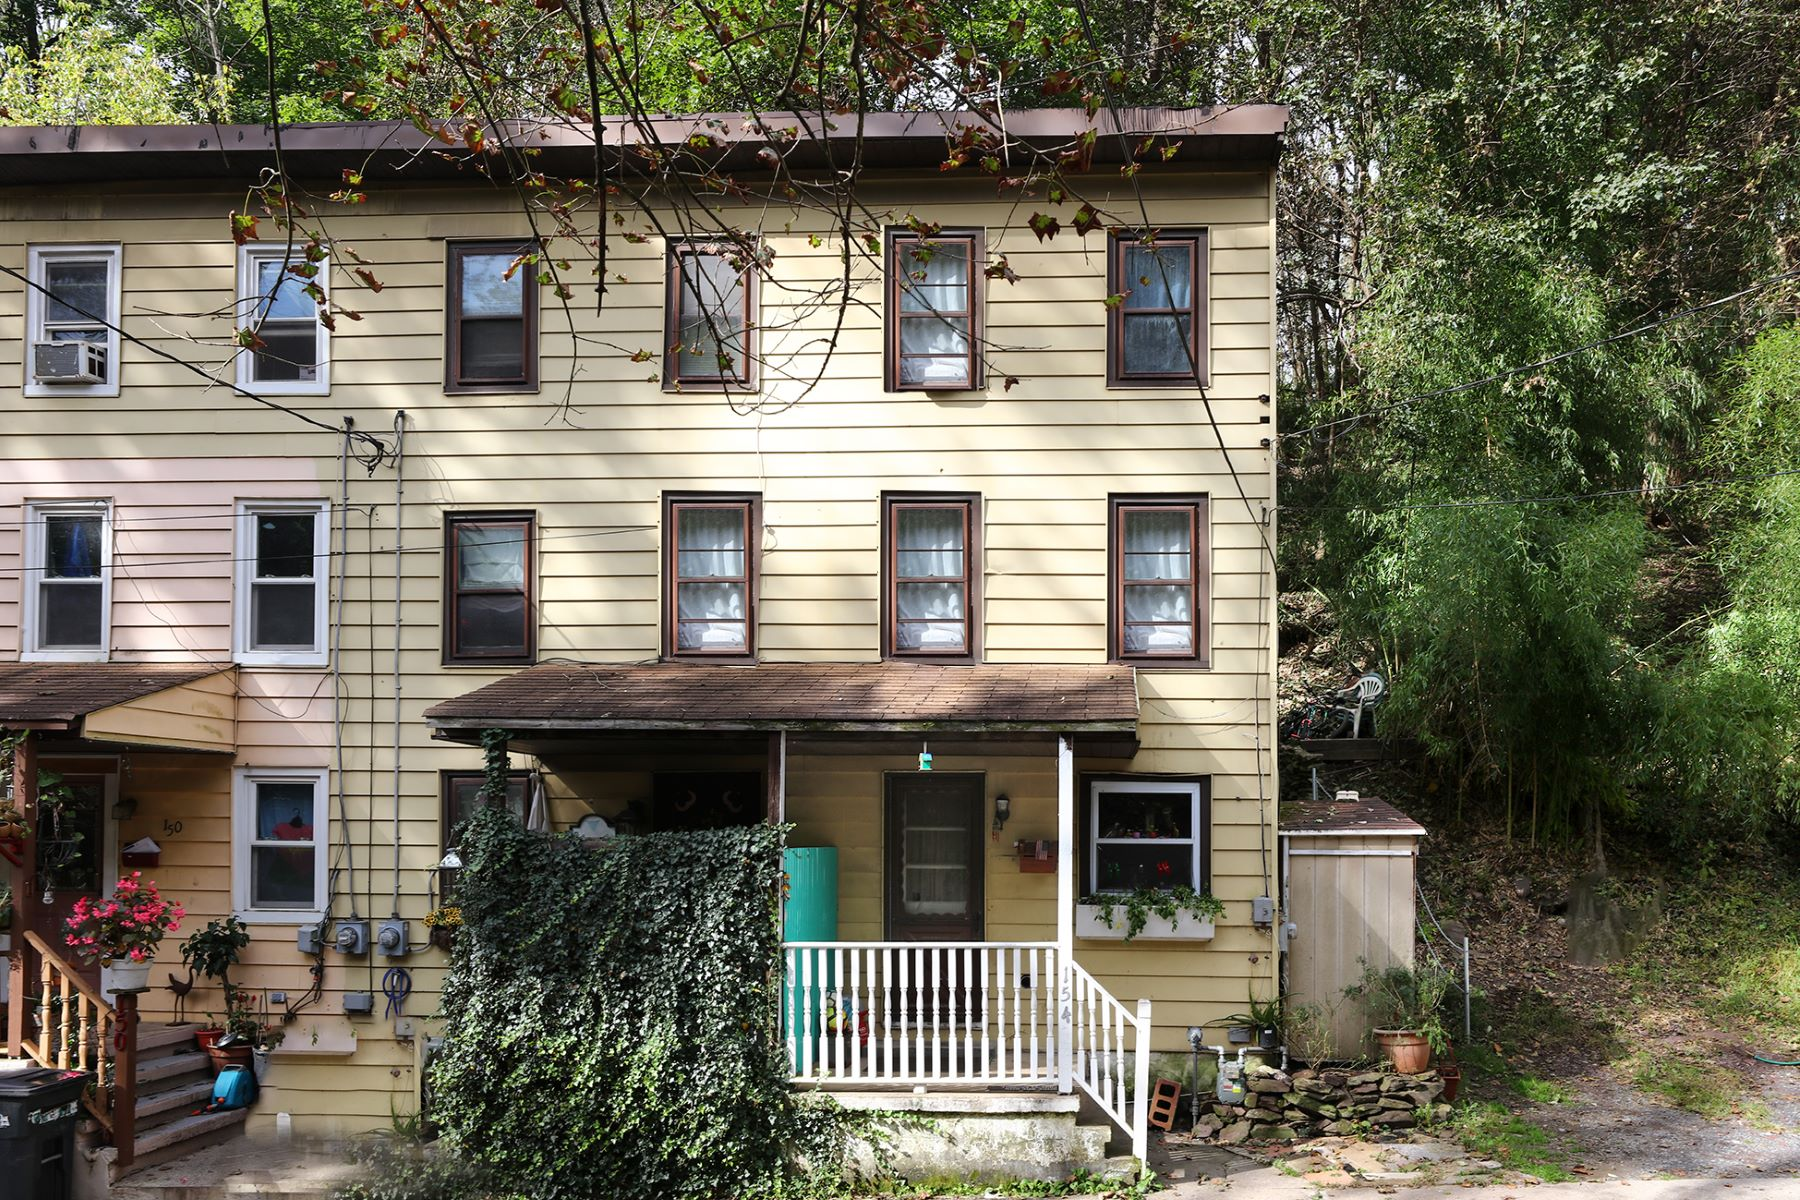 Single Family Home for Sale at Nice Starter Home or Invester Special 154 York Street Lambertville, New Jersey 08530 United States